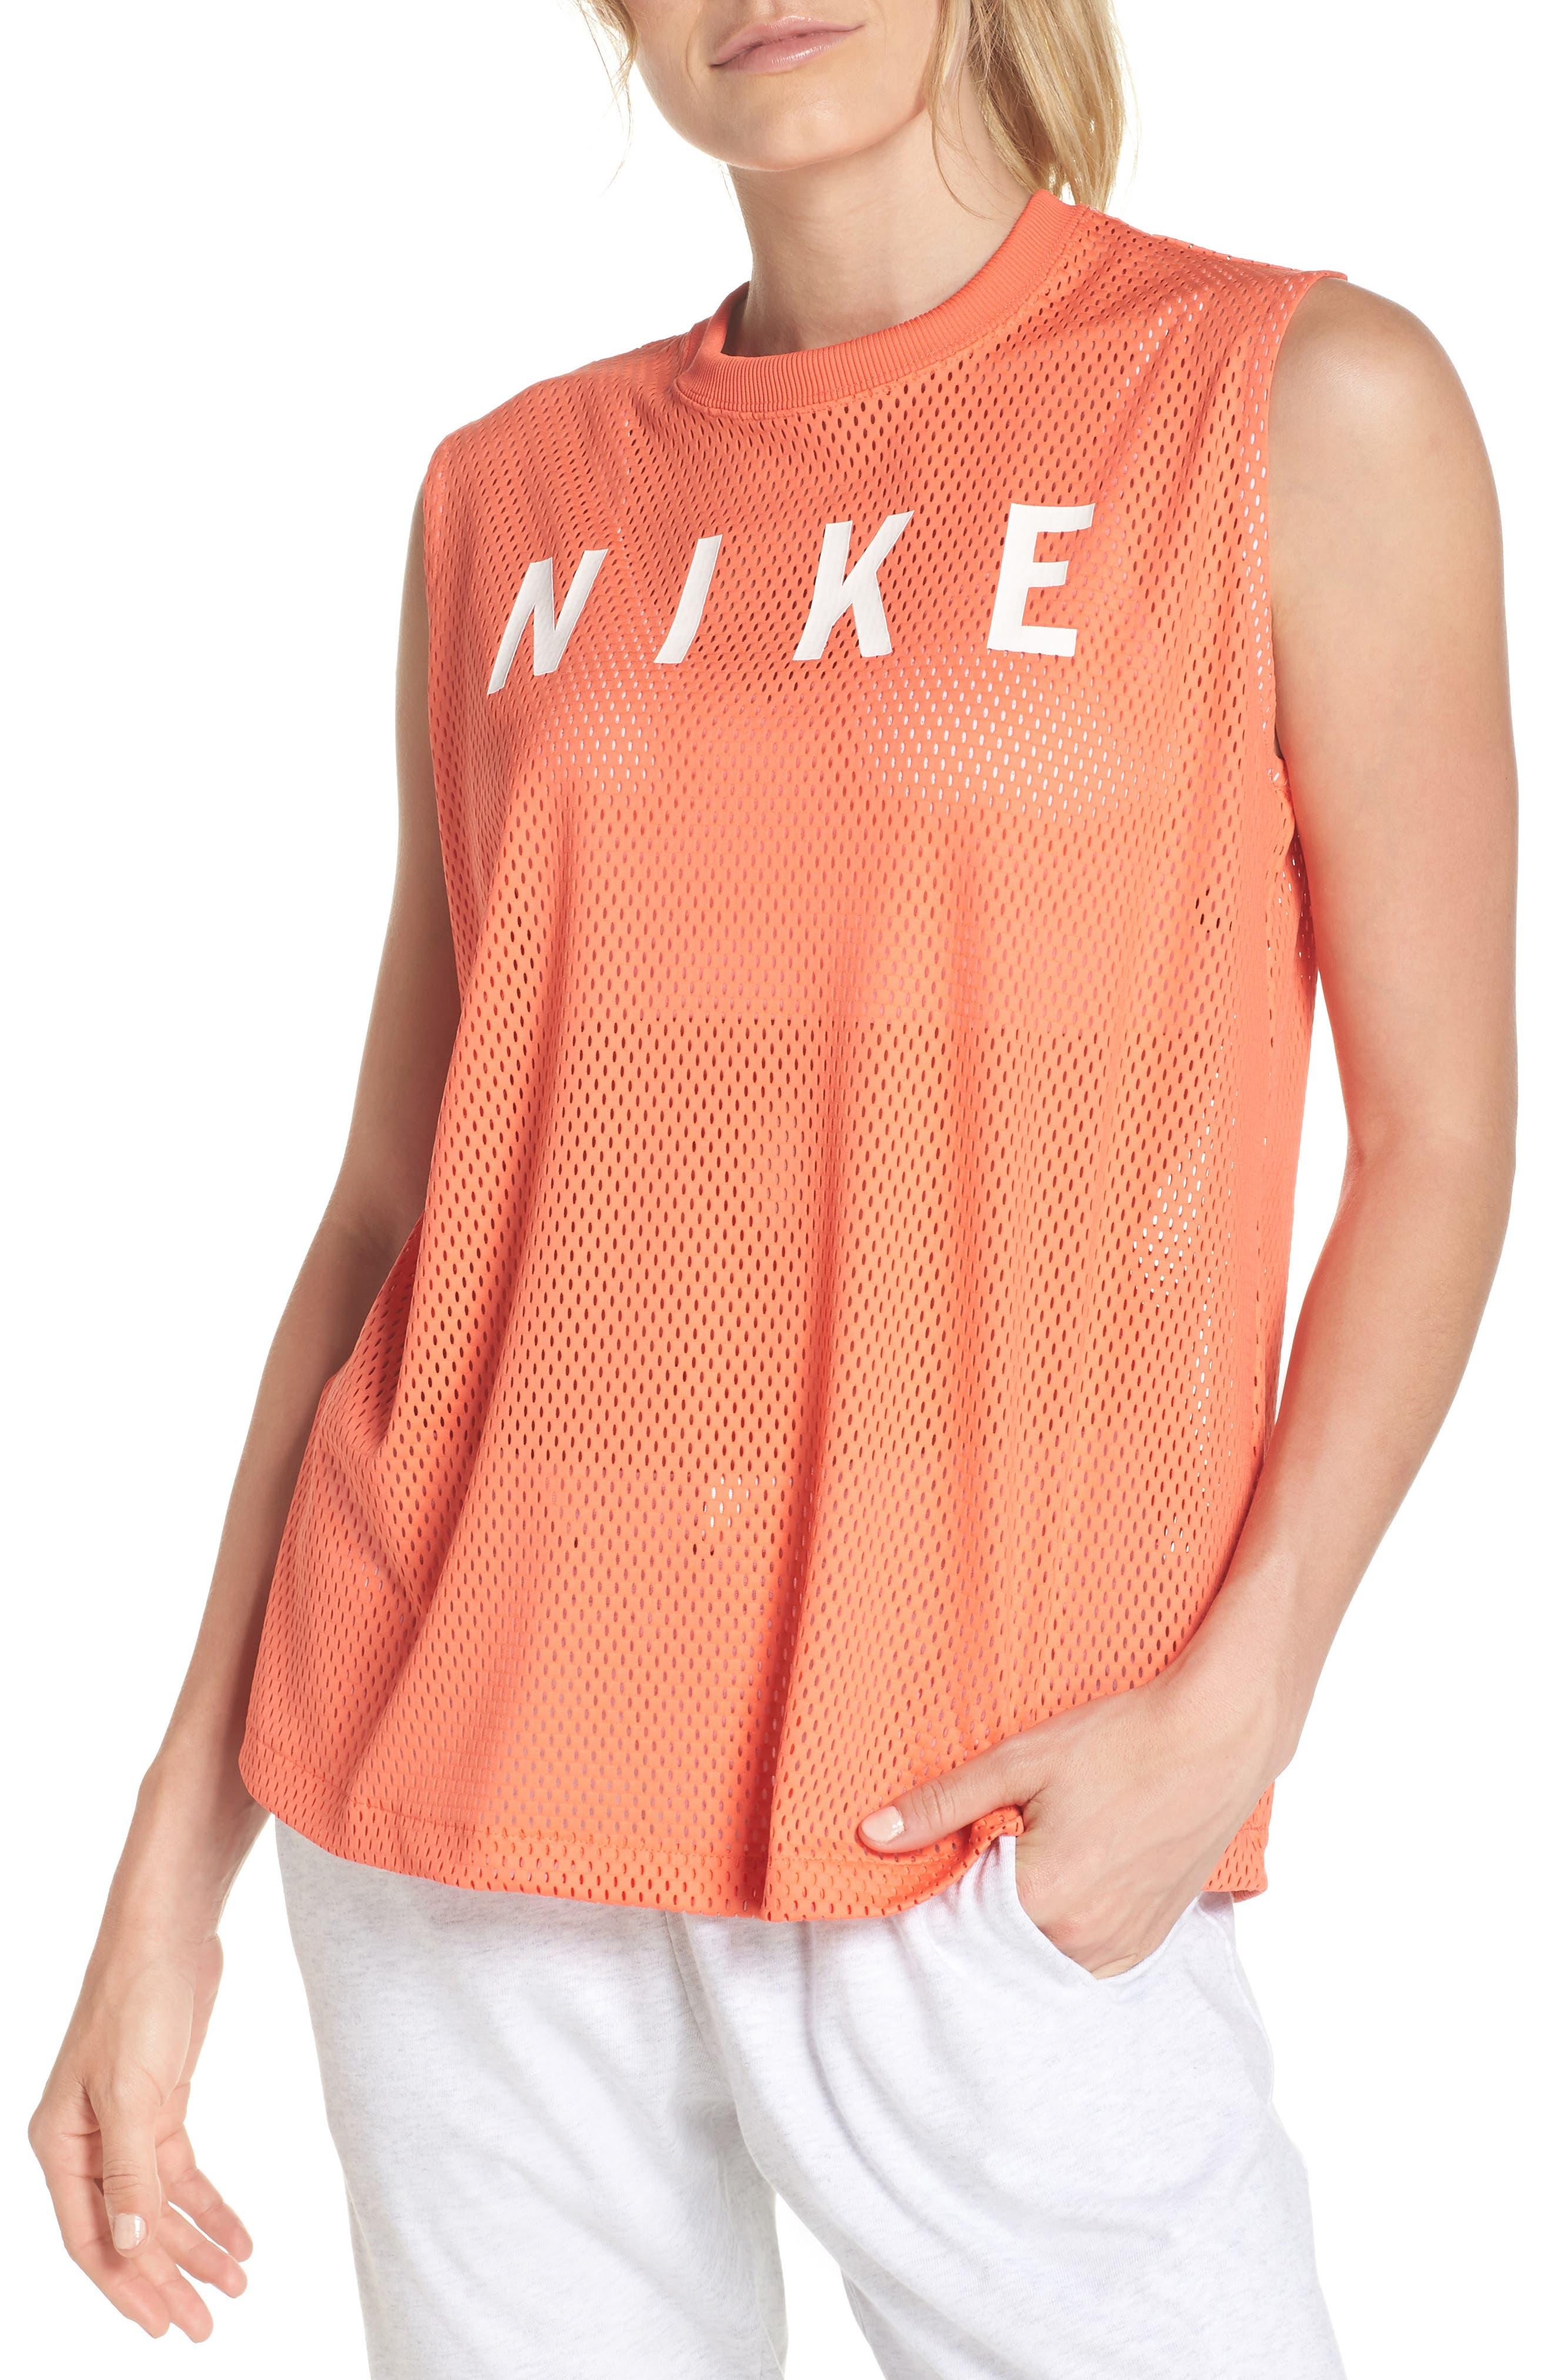 Sportswear Women's Dry Mesh Muscle Tank,                             Main thumbnail 1, color,                             Rush Coral/ White